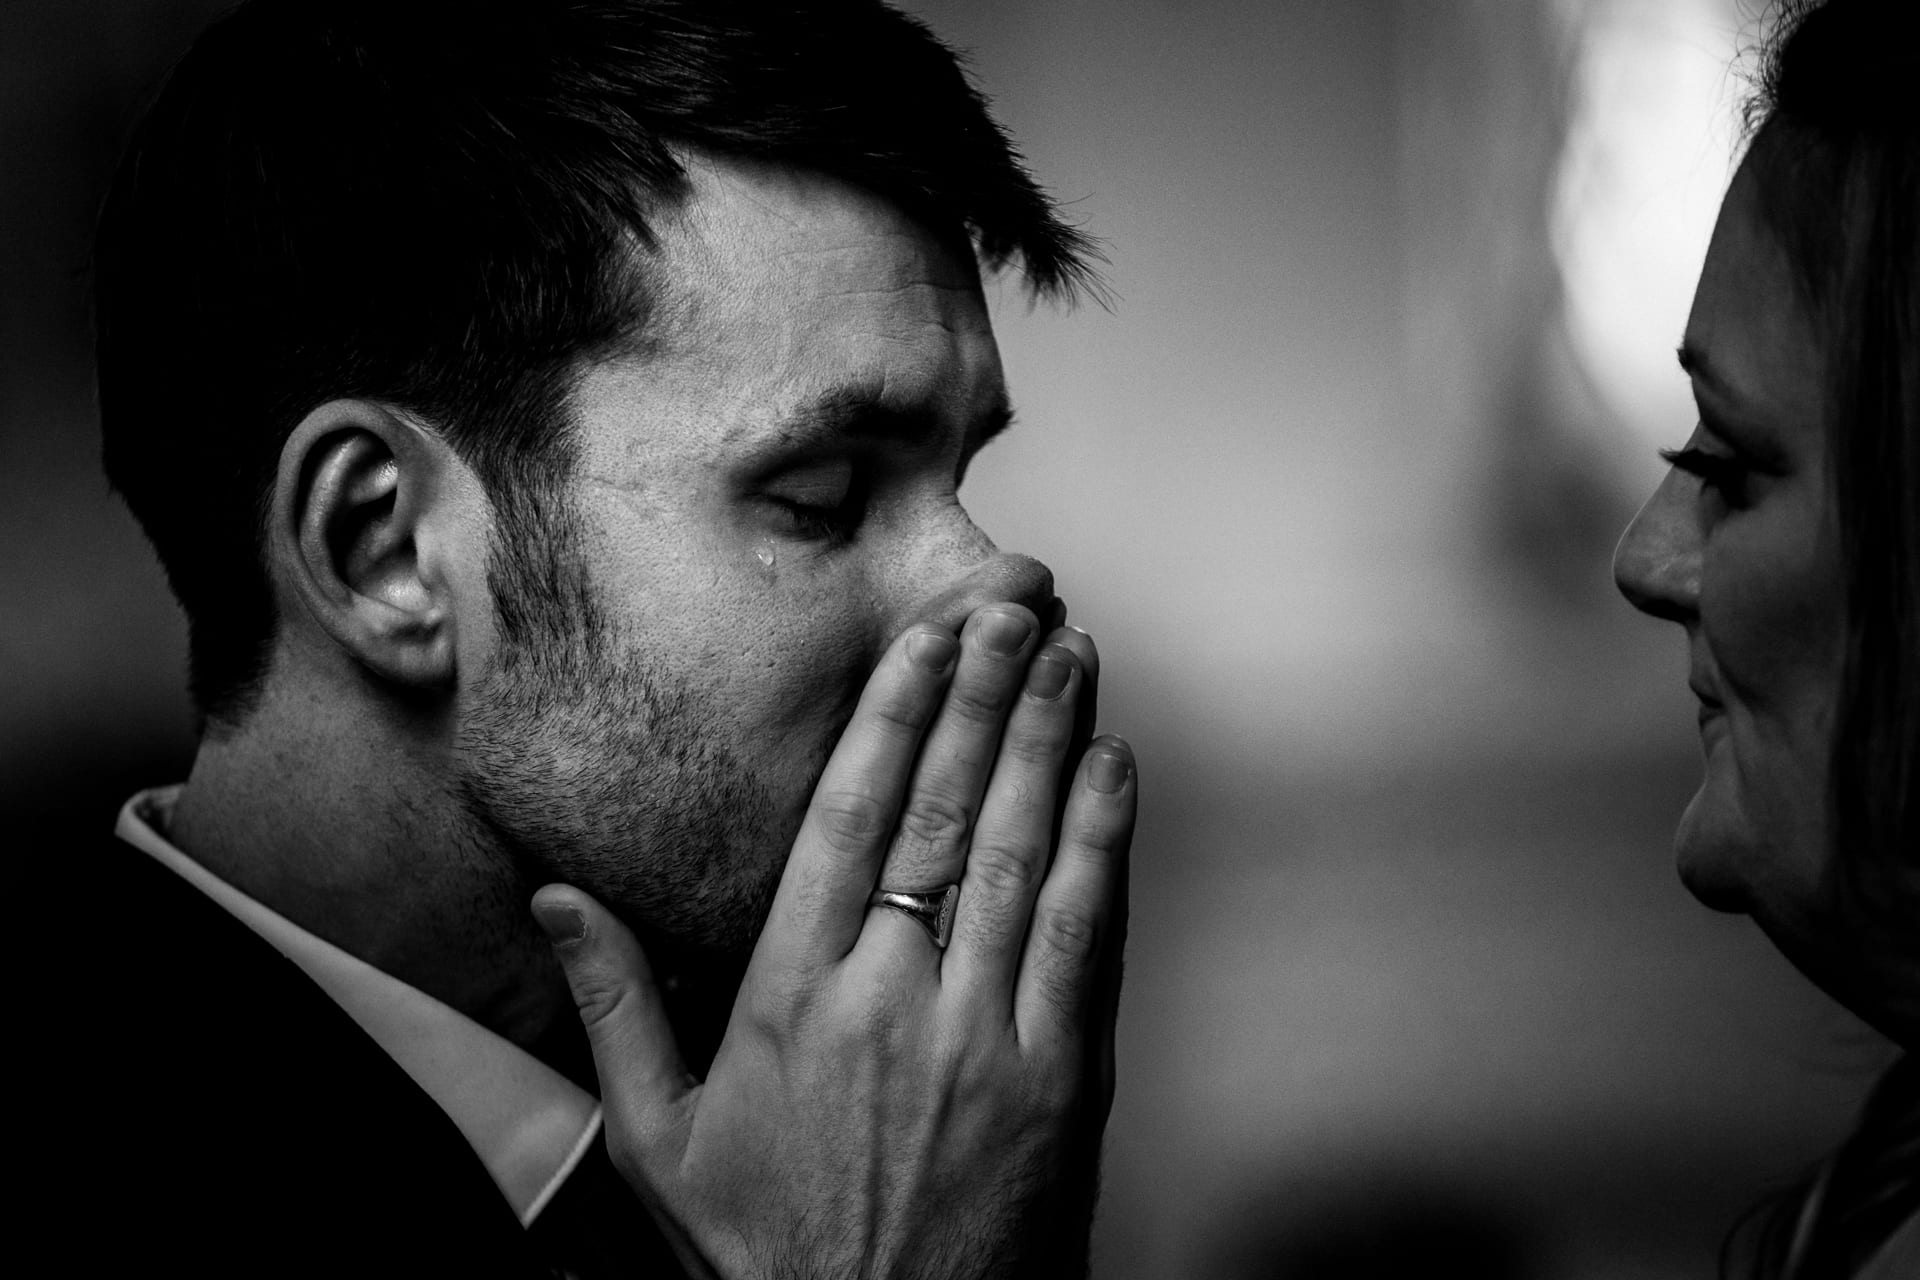 Groom sheds a tear before his wedding